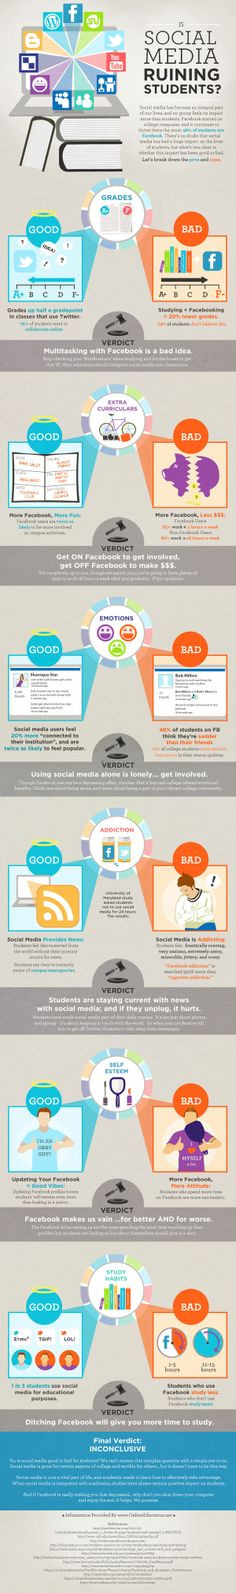 Infographic: Is Social Media Ruining Students?